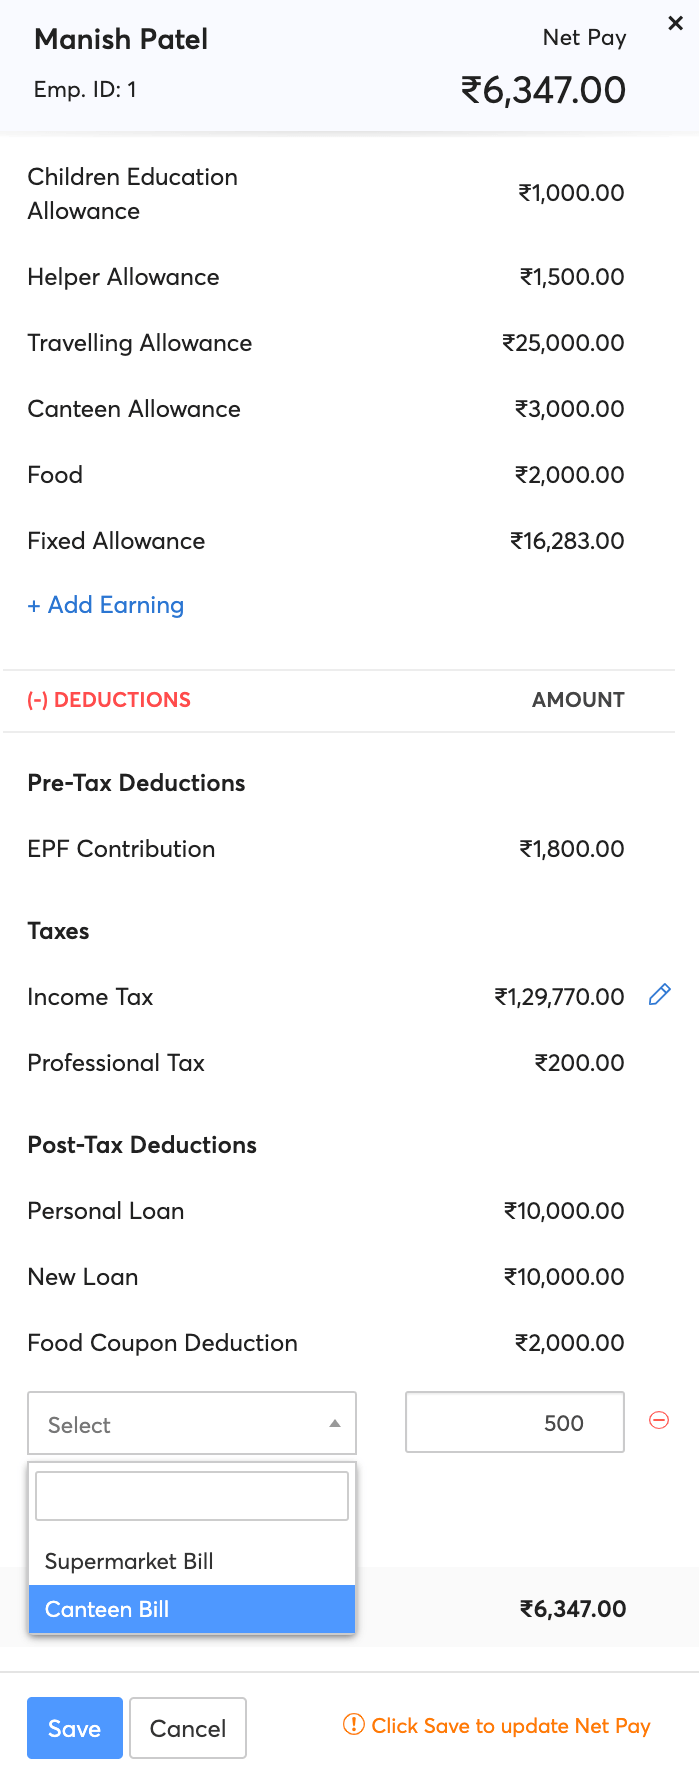 Adding One-time Deductions